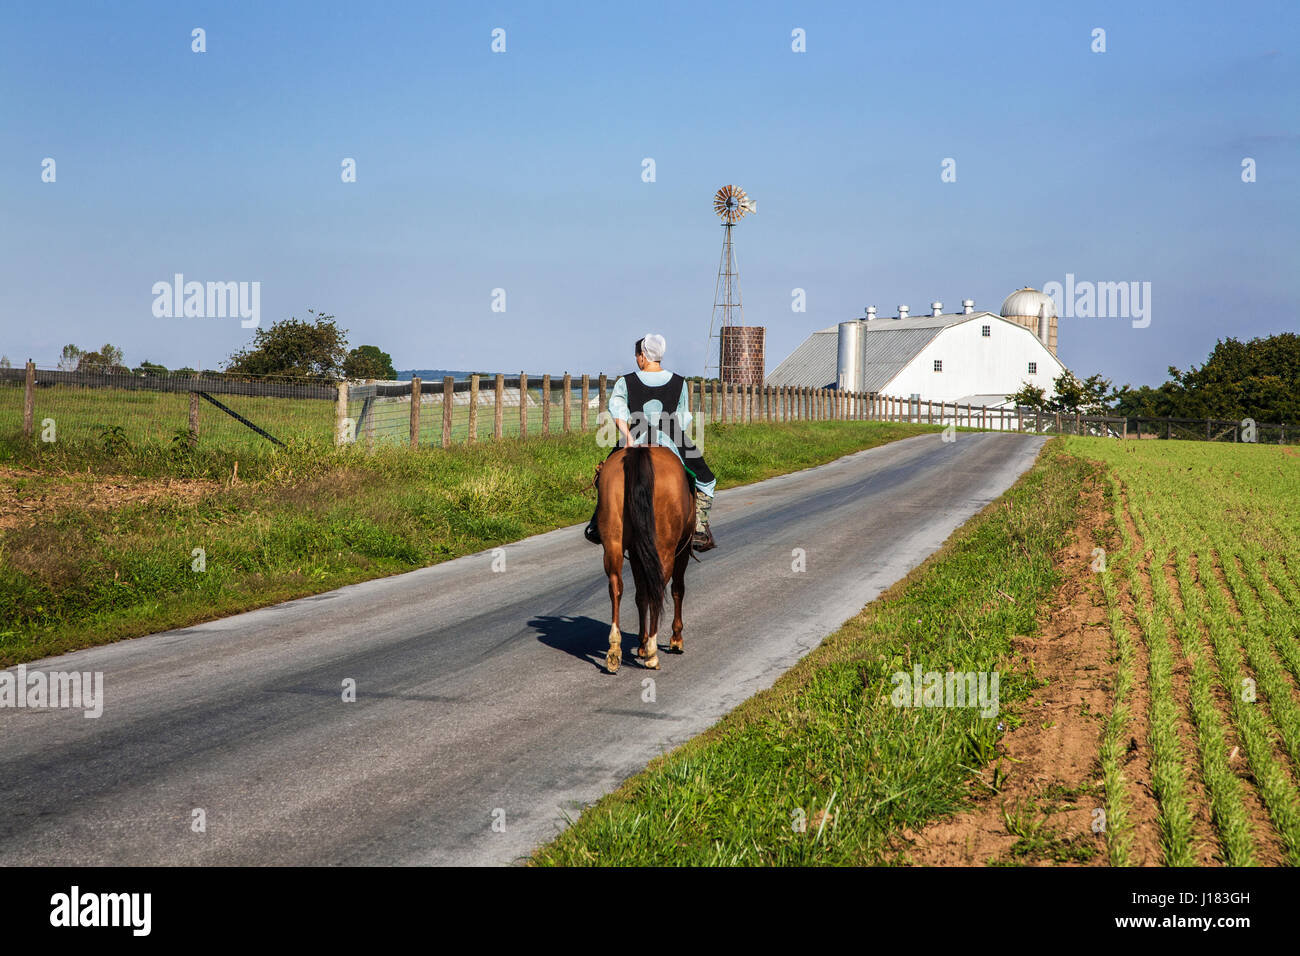 Amish young lady riding a horse on a rural Amish farm country road with a white barn, Lancaster County, rural Pennsylvania, Stock Photo